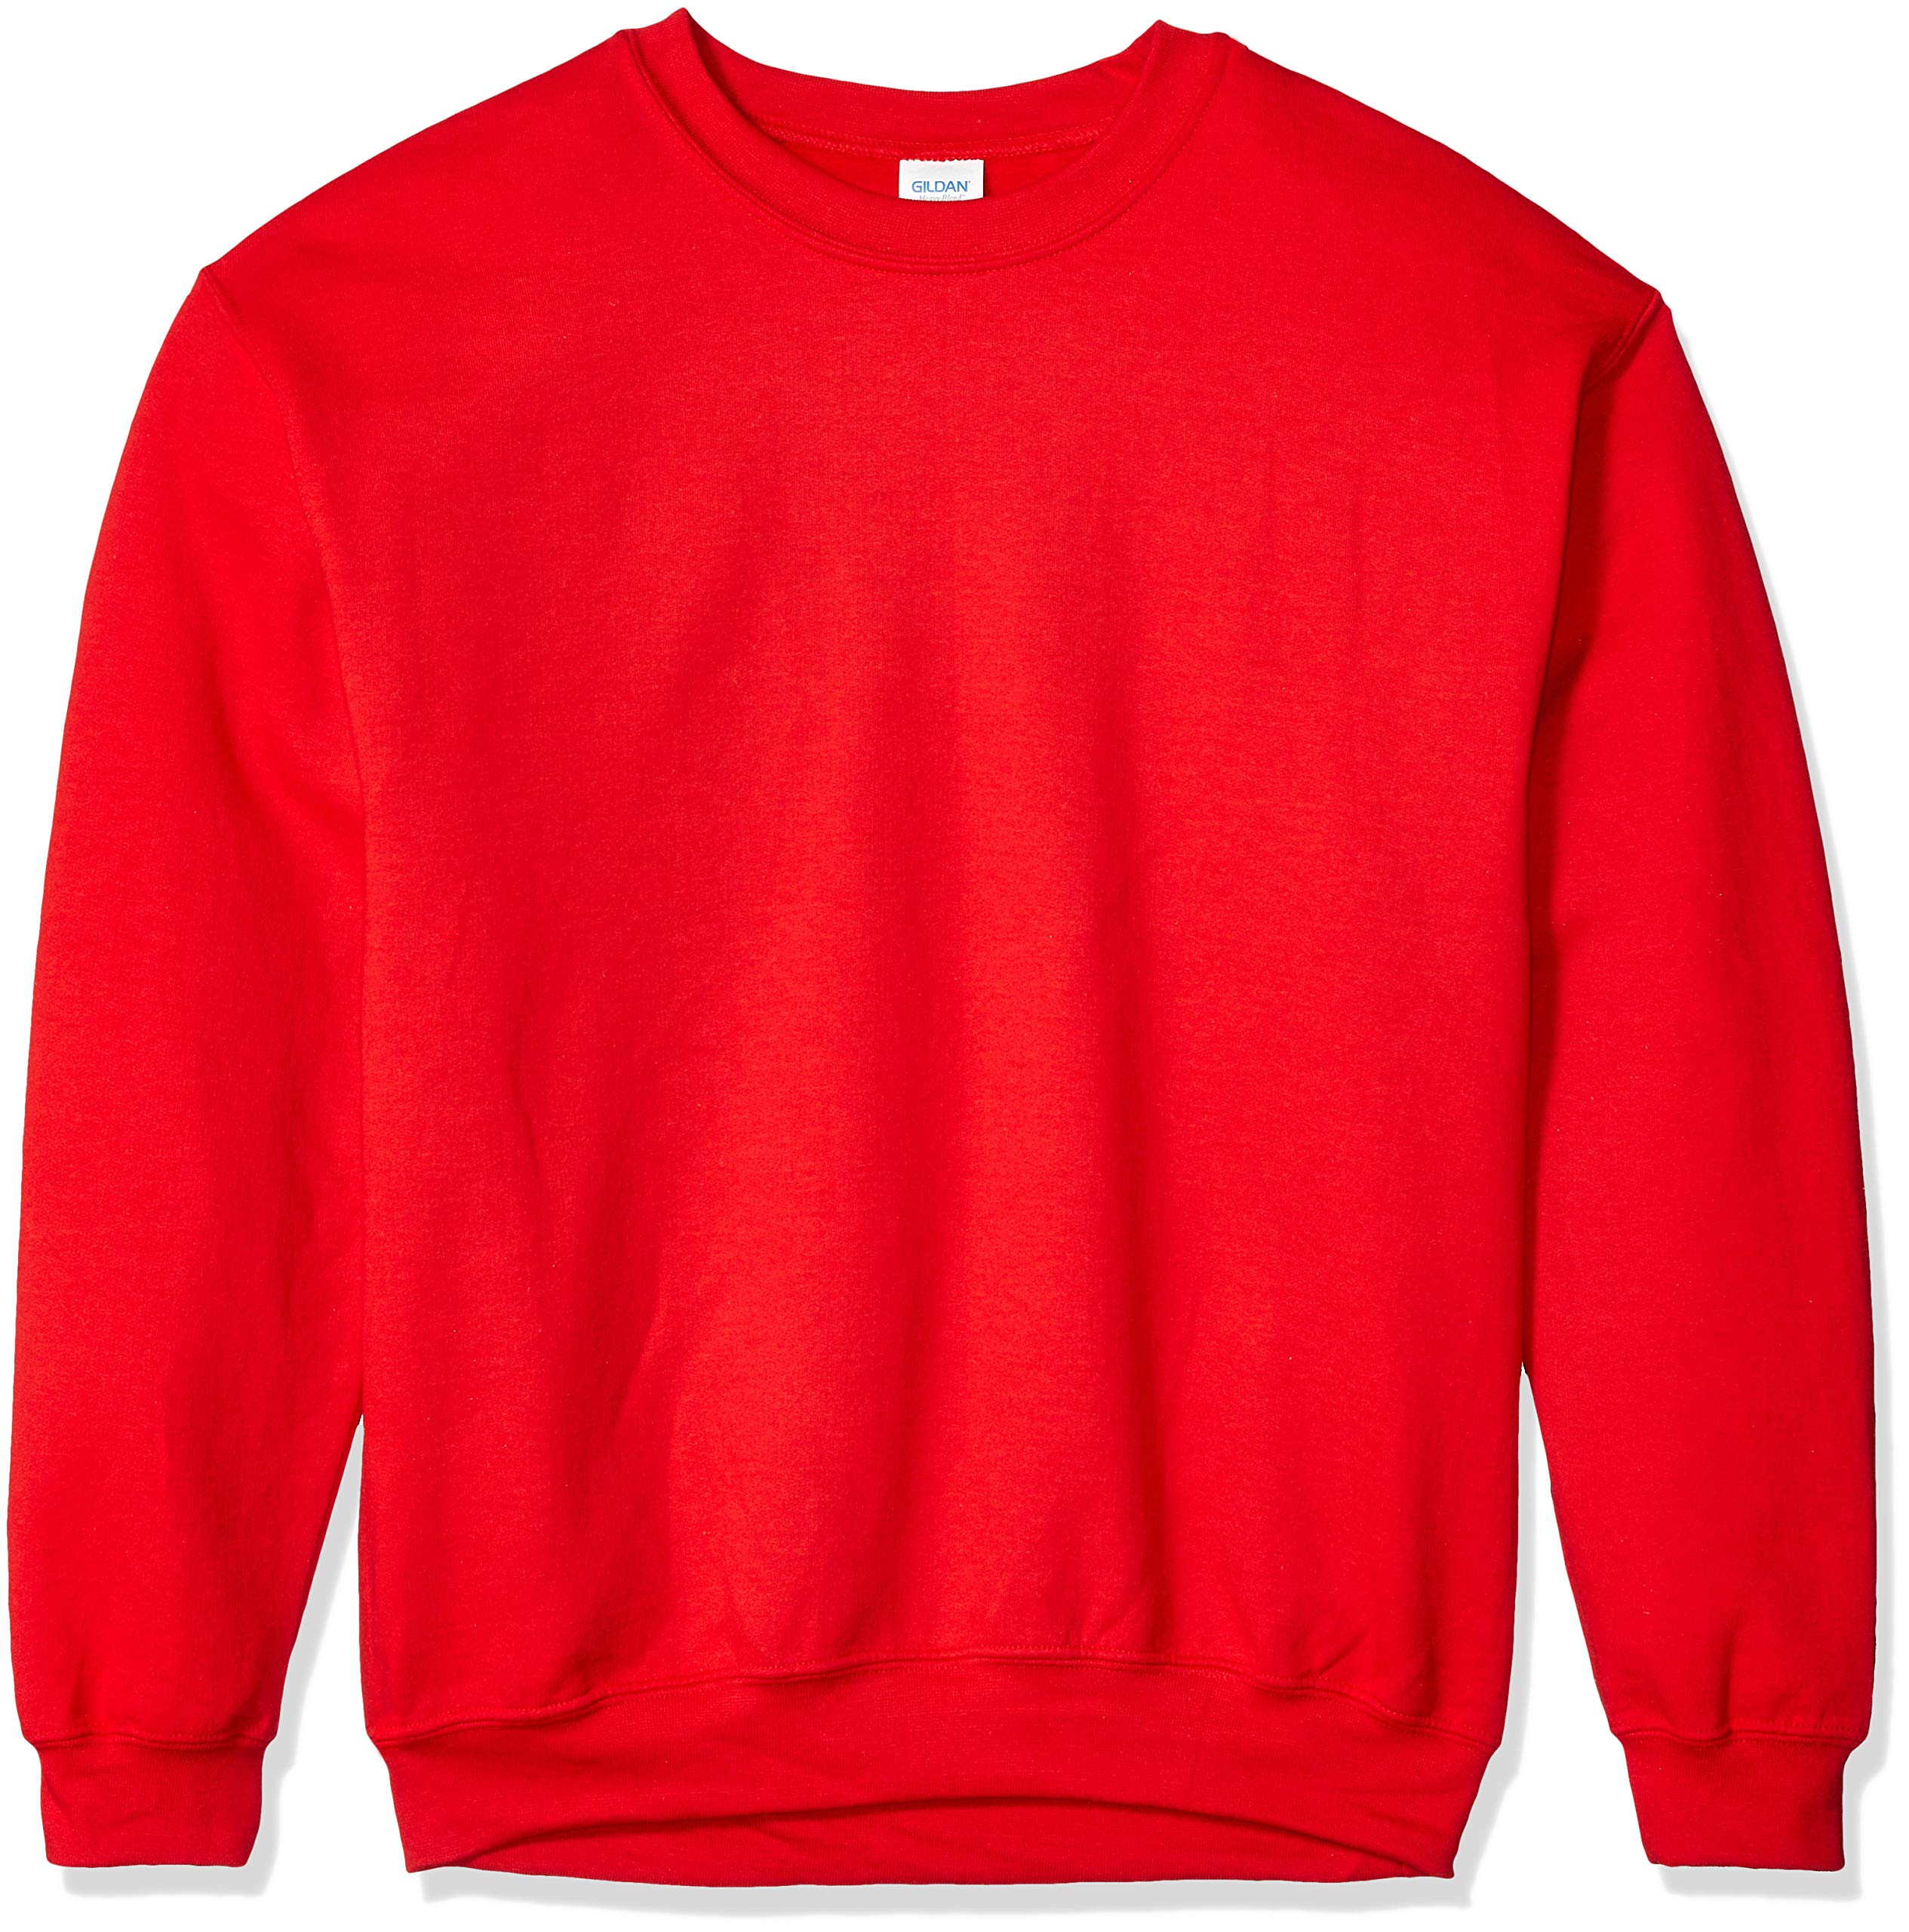 Gildan Men's Fleece Crewneck Sweatshirt, Red Medium by Gildan